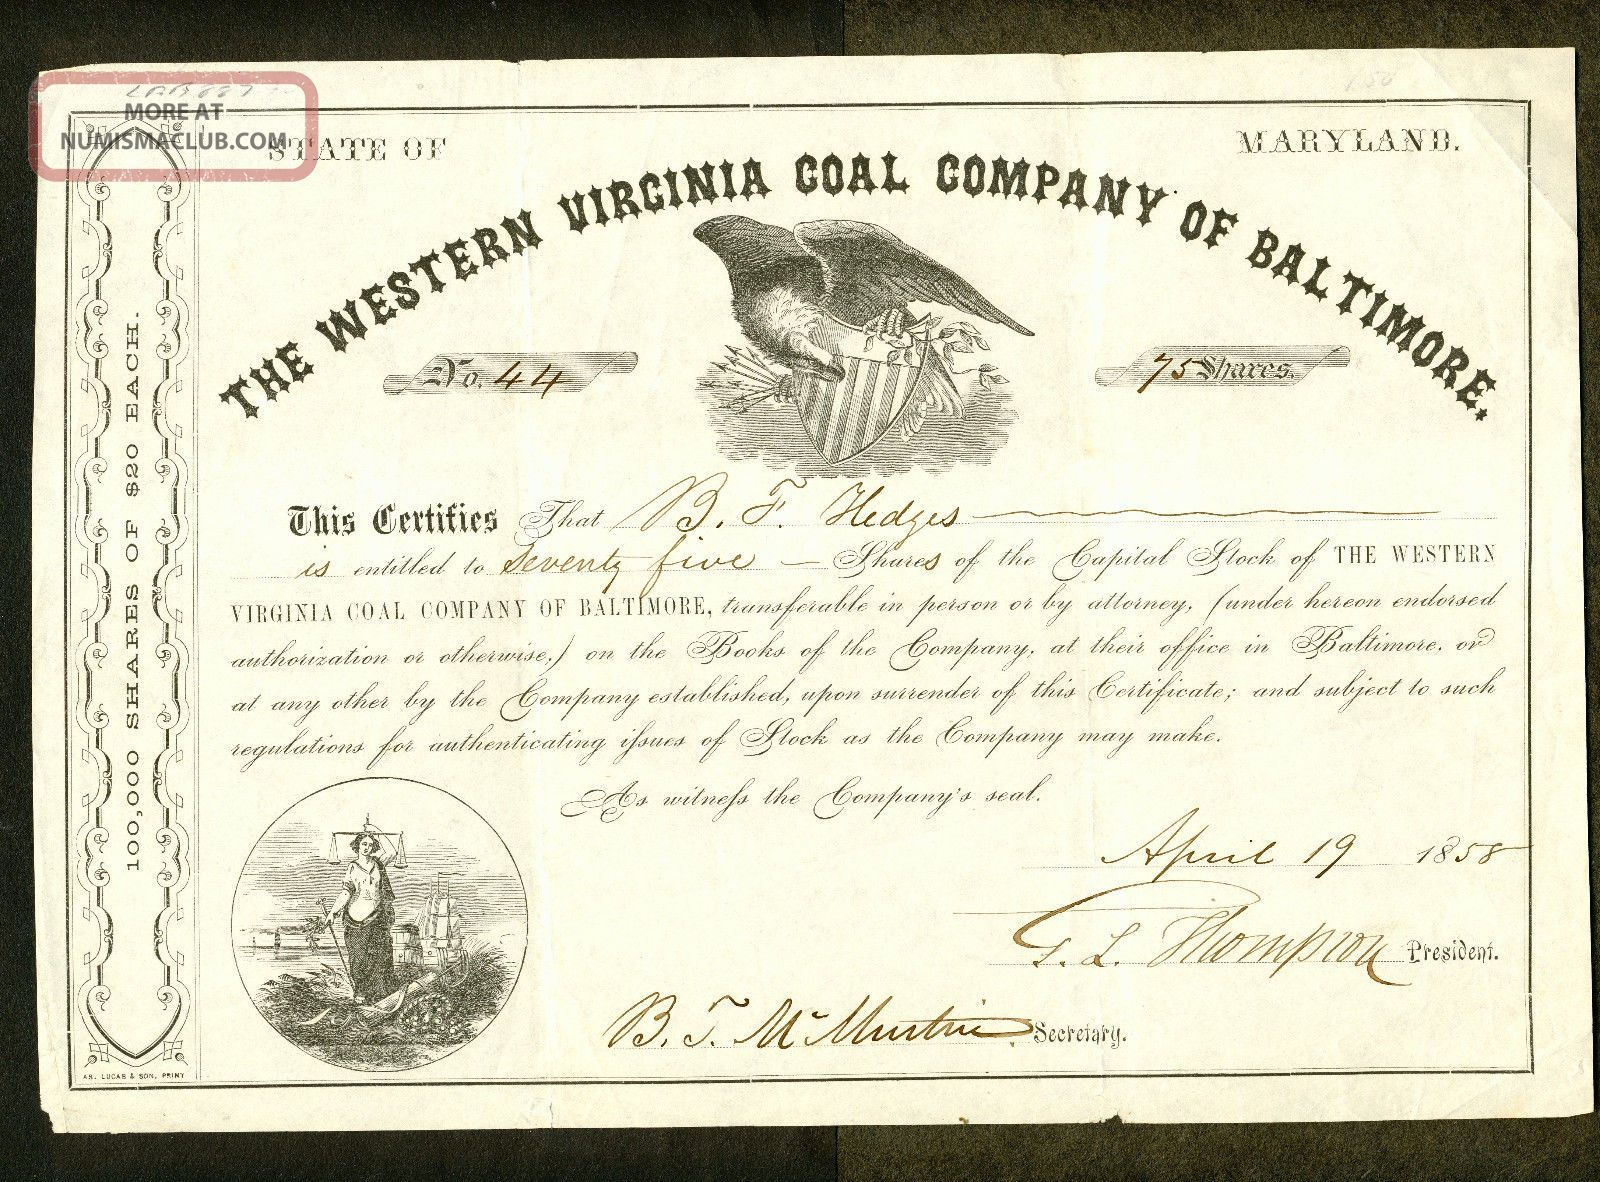 1858 Western Virginia Coal Company Of Baltimore Stock Certificate Stocks & Bonds, Scripophily photo